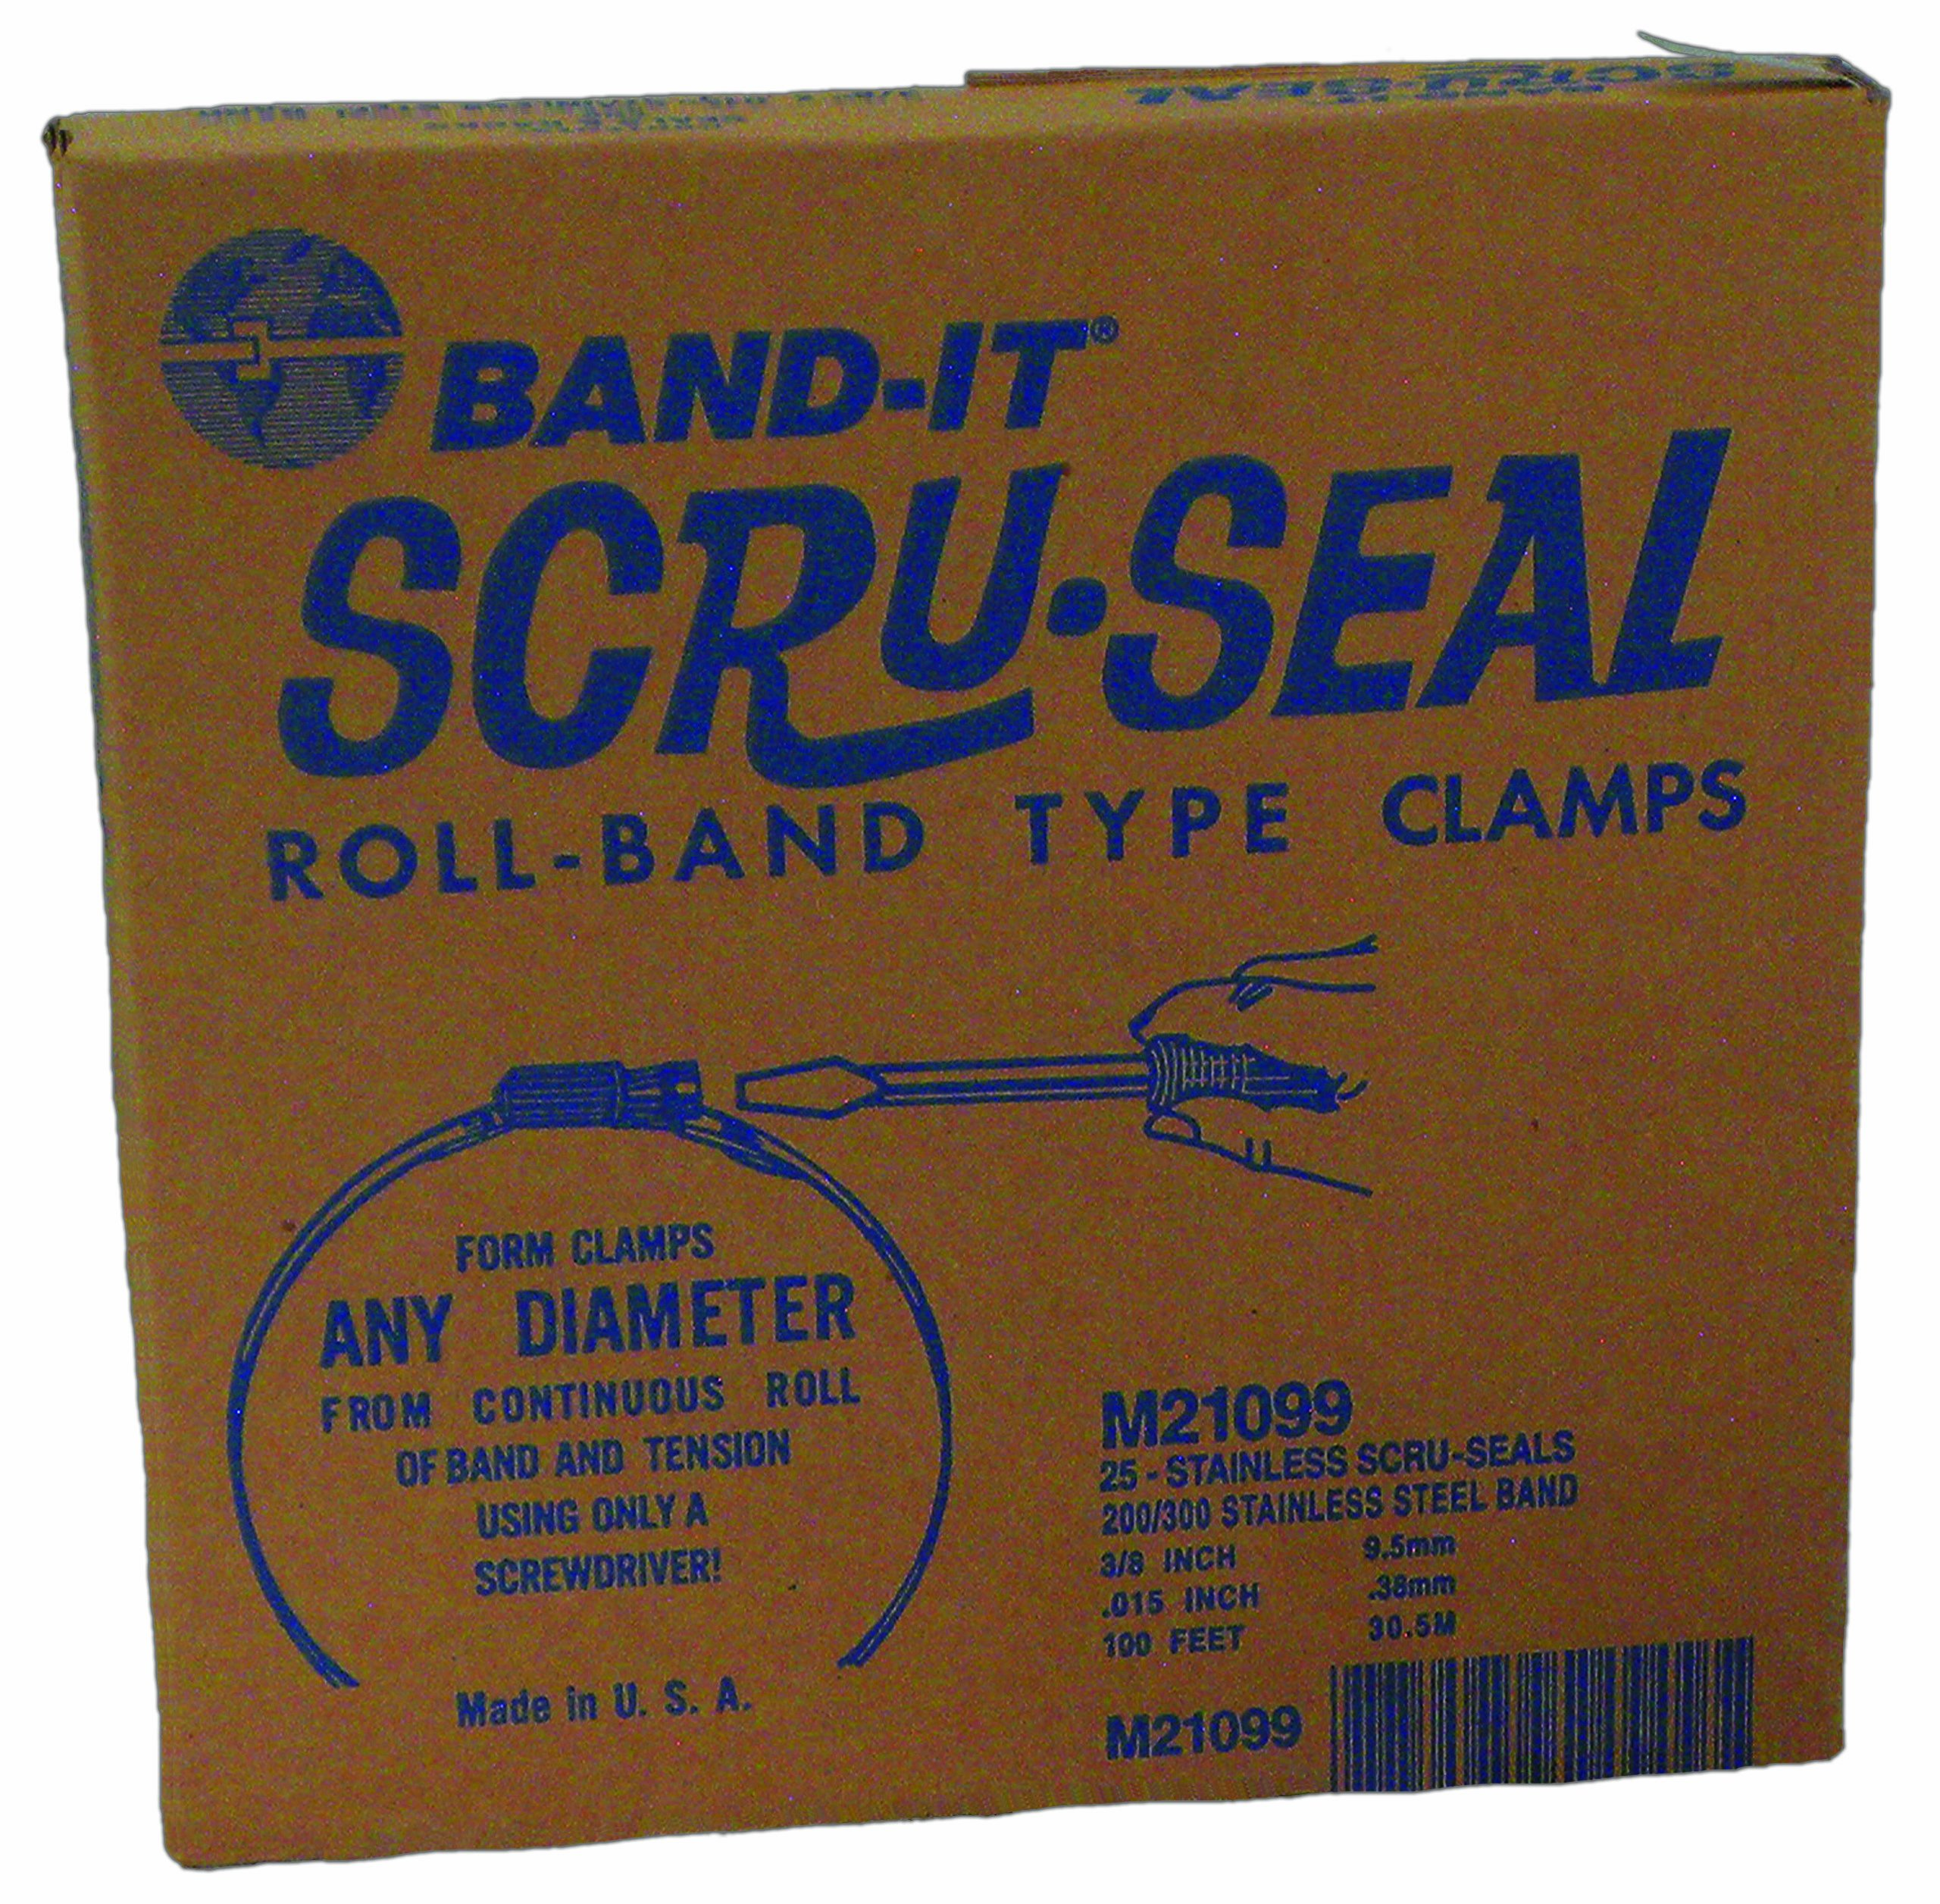 BAND-IT M21099 Scru-Seal Kit by Band-It